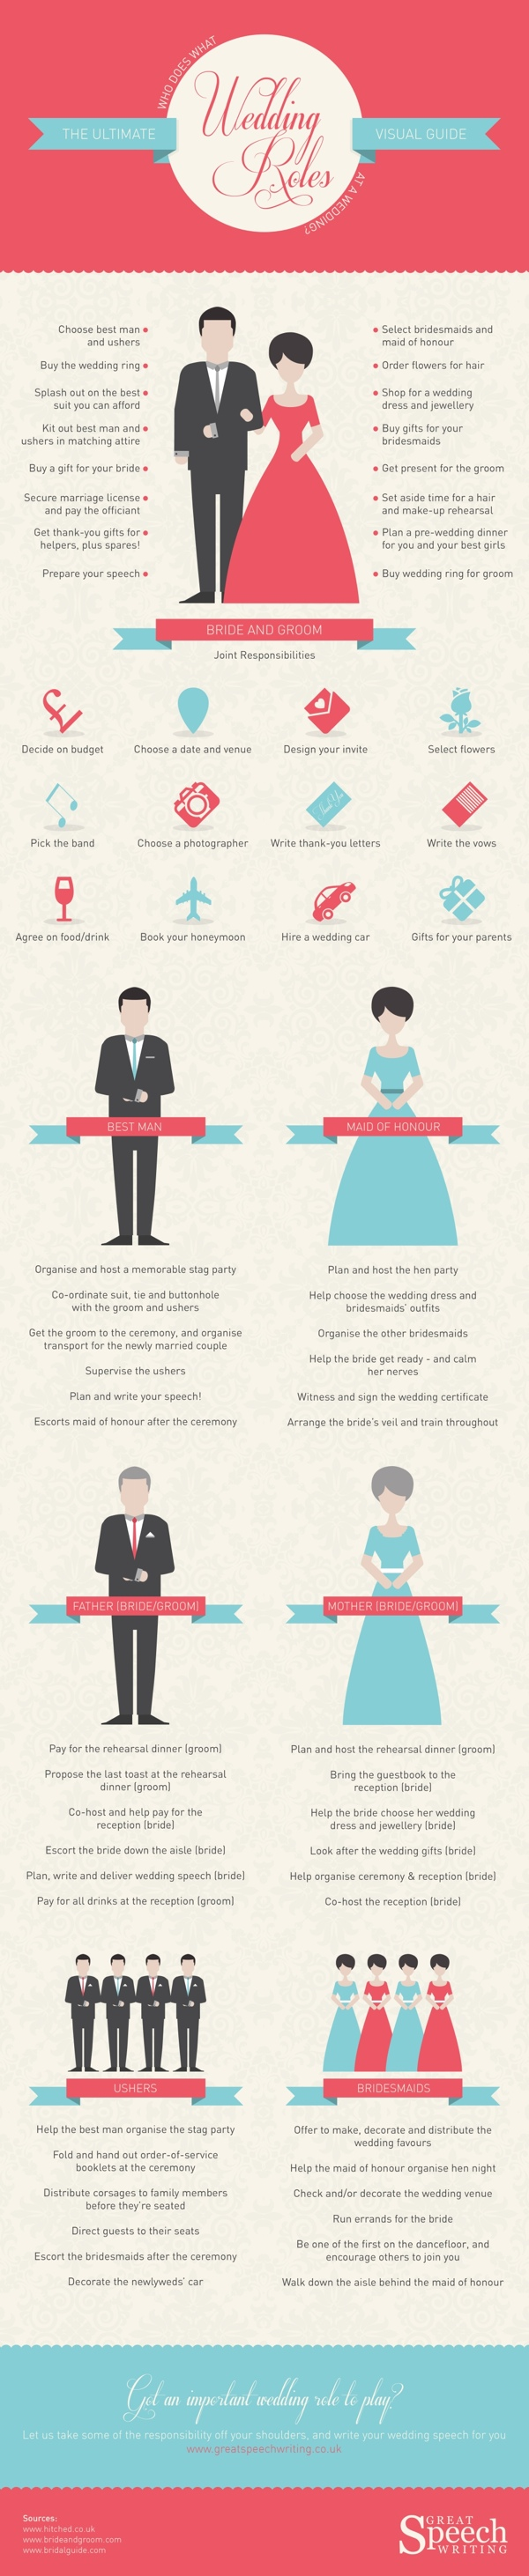 Wedding-Roles-UK